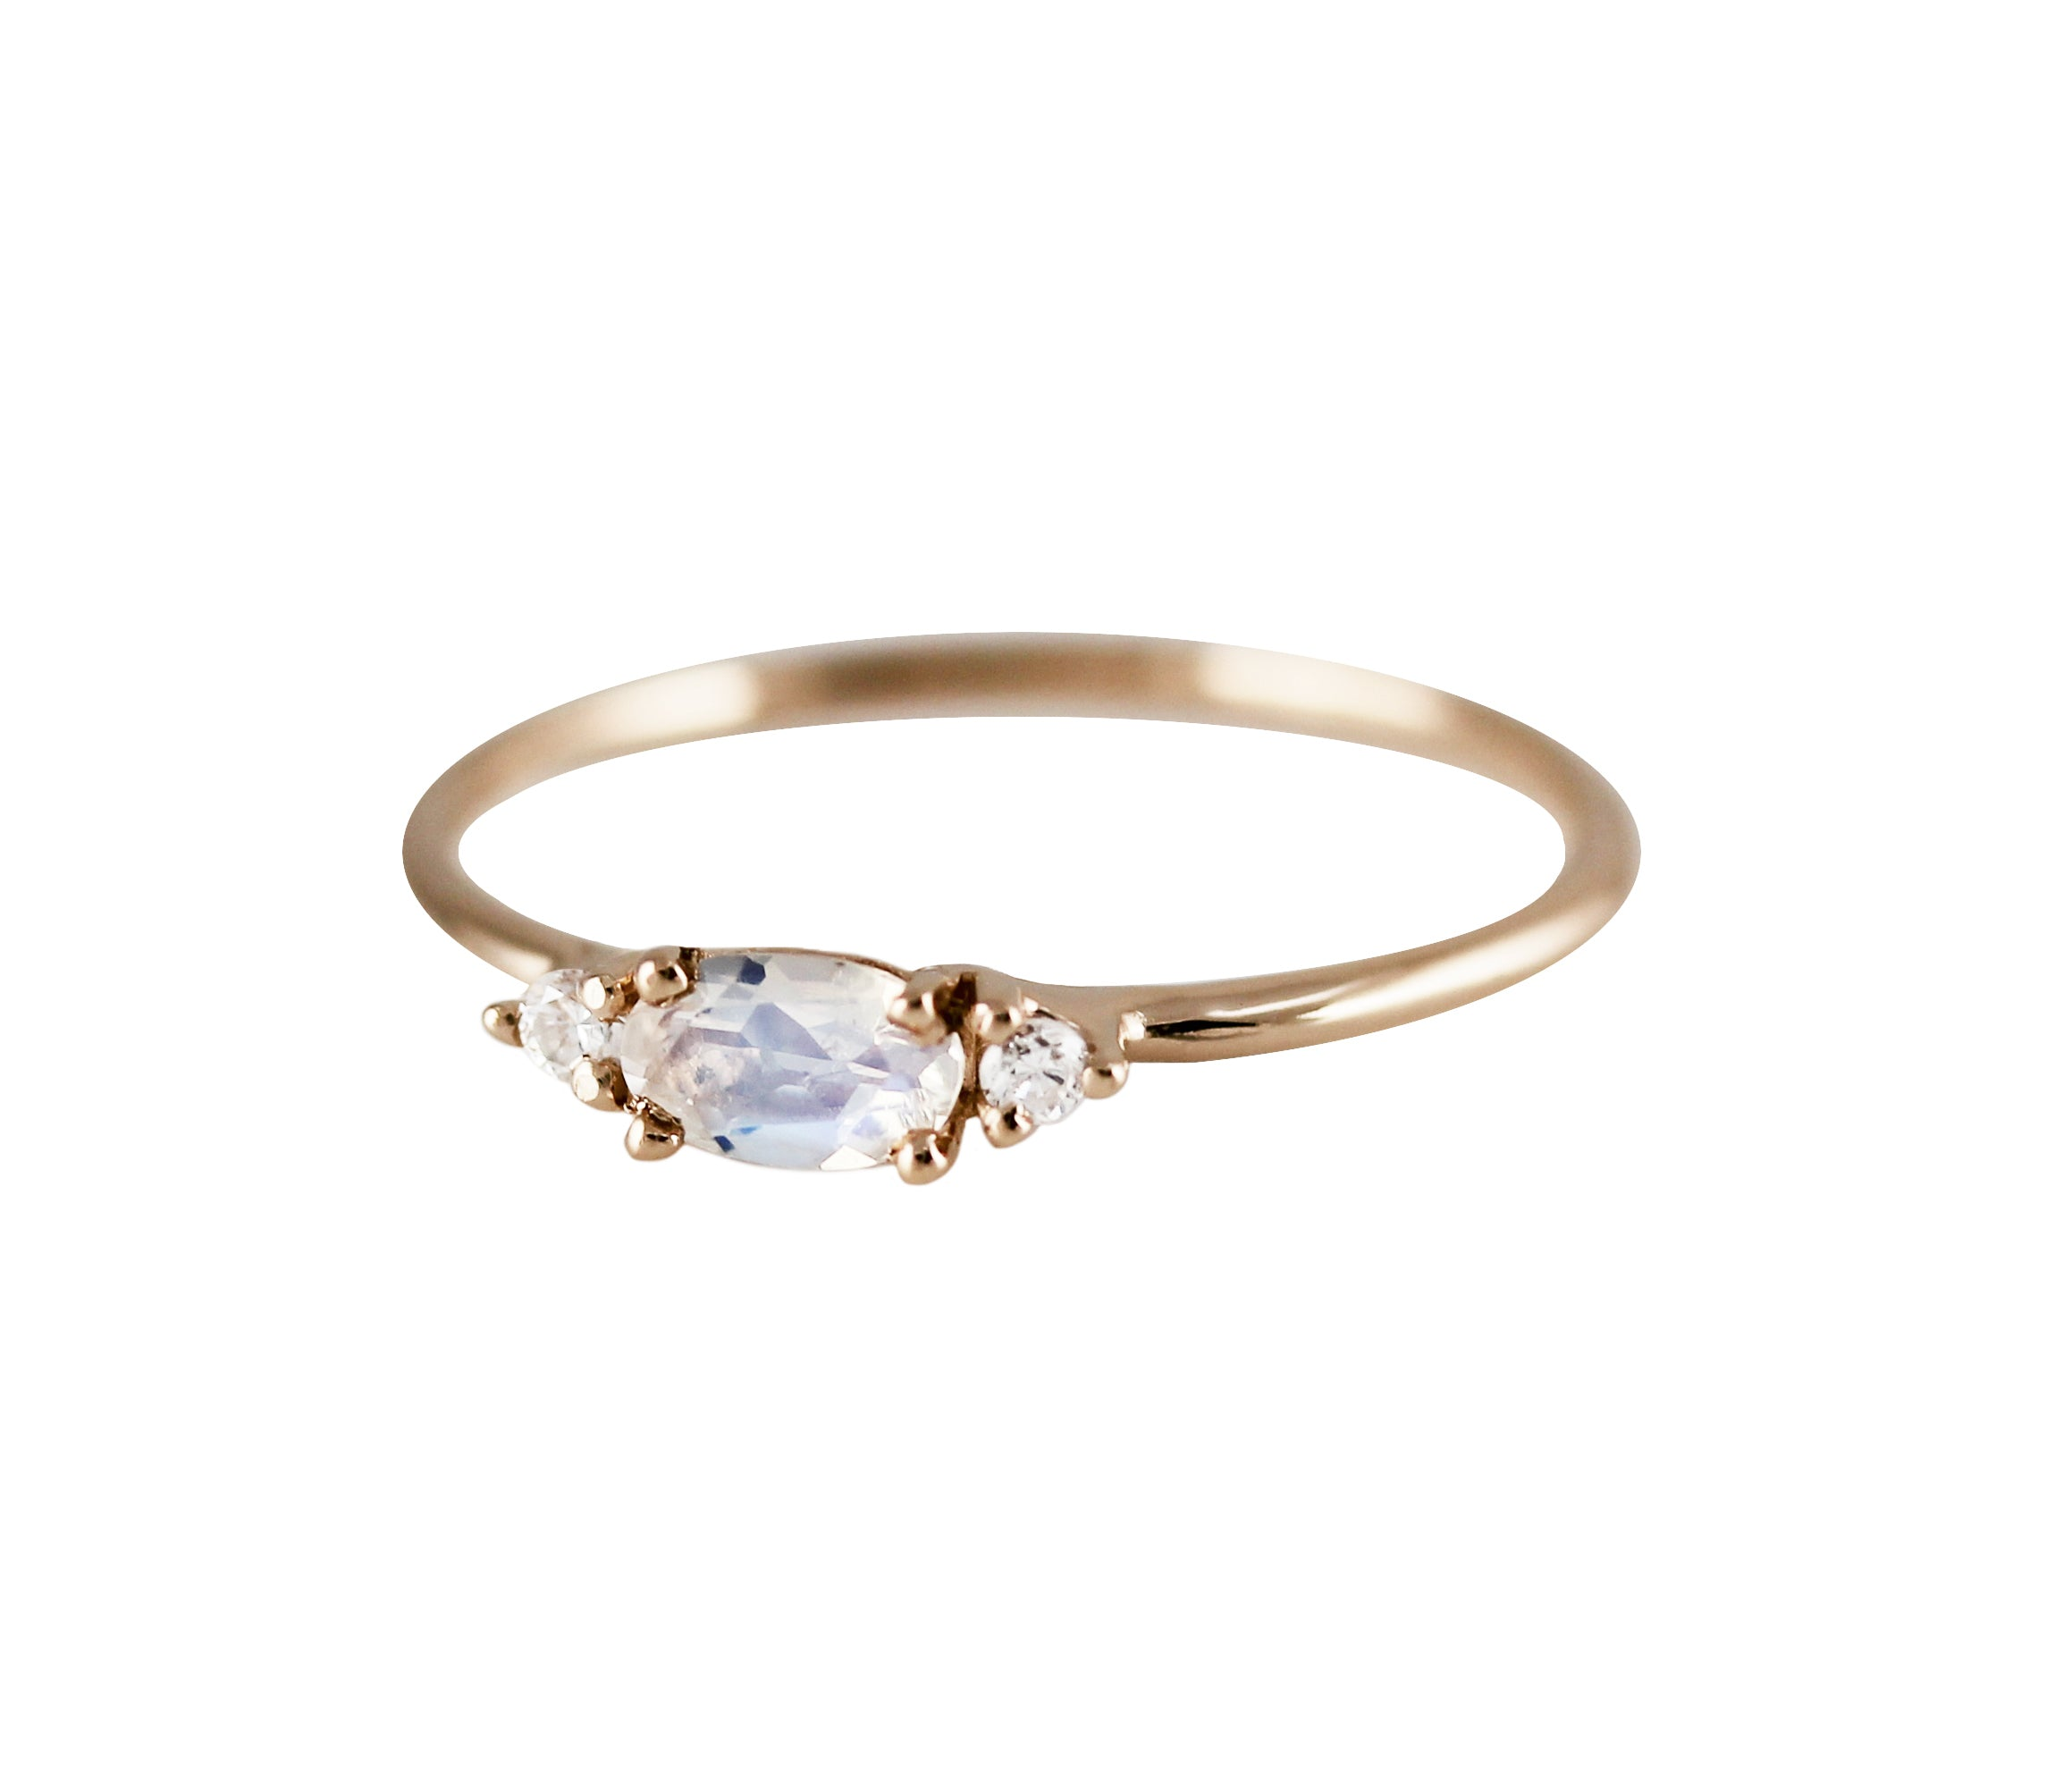 alexandrite forshmit co rings diamond gold ornamento and moonstone by gili pin